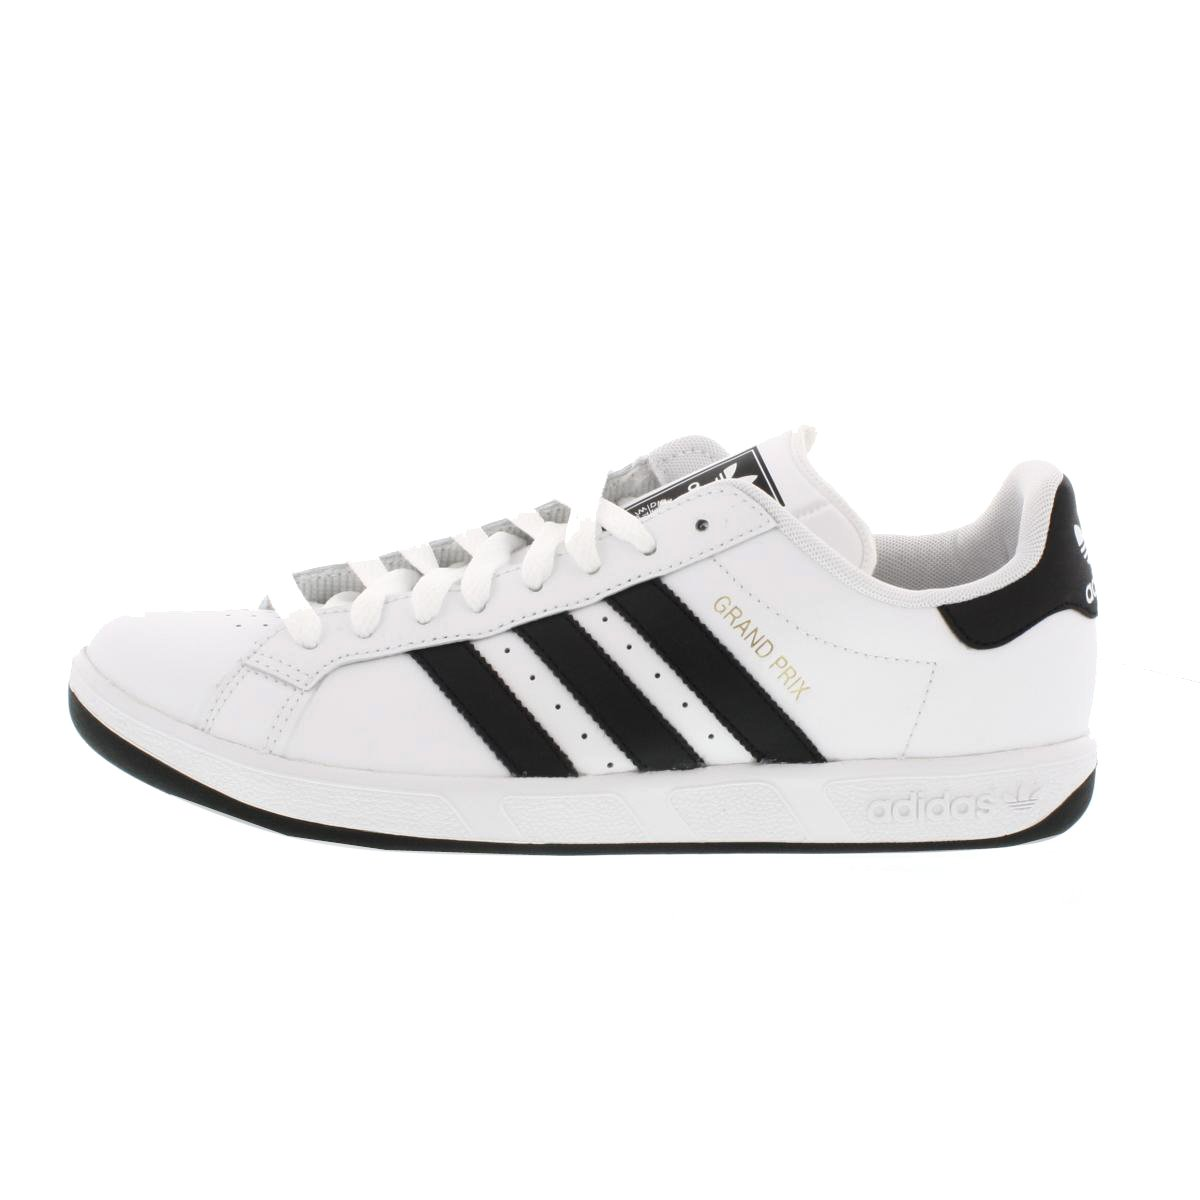 adidas originals grand prix shoes running white black. Black Bedroom Furniture Sets. Home Design Ideas